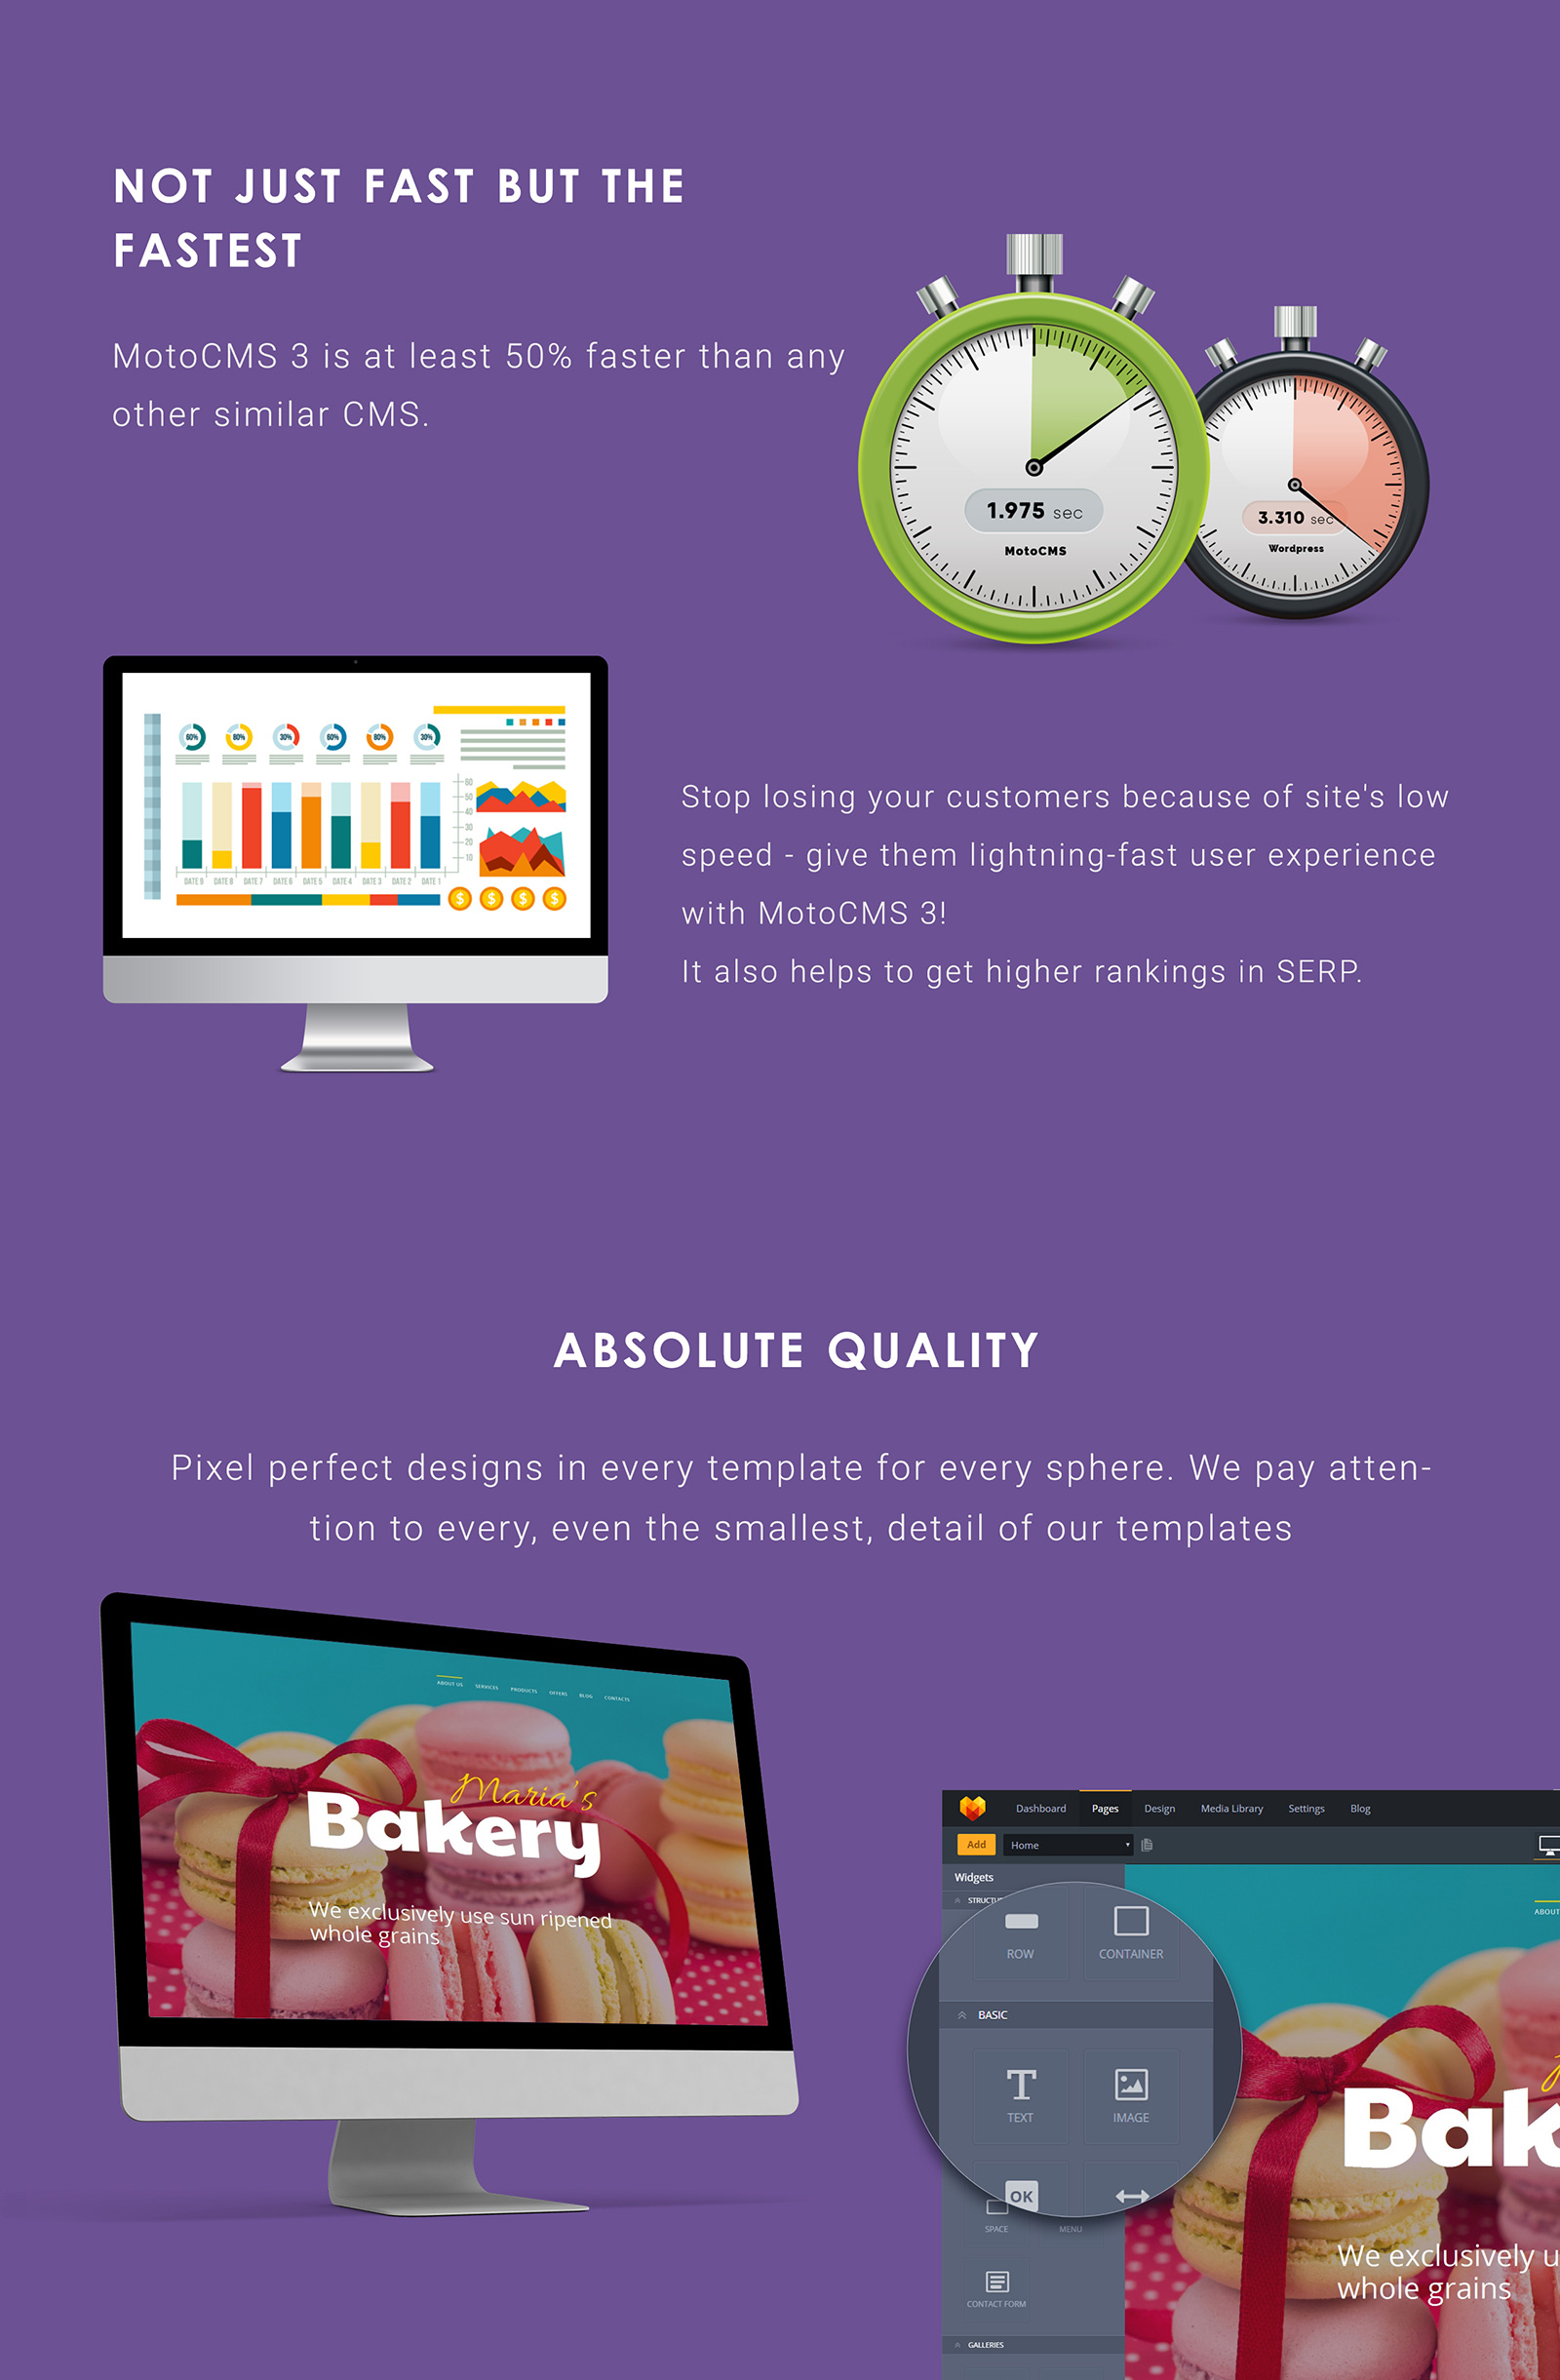 Cakes and Bakery Moto CMS 3 Template